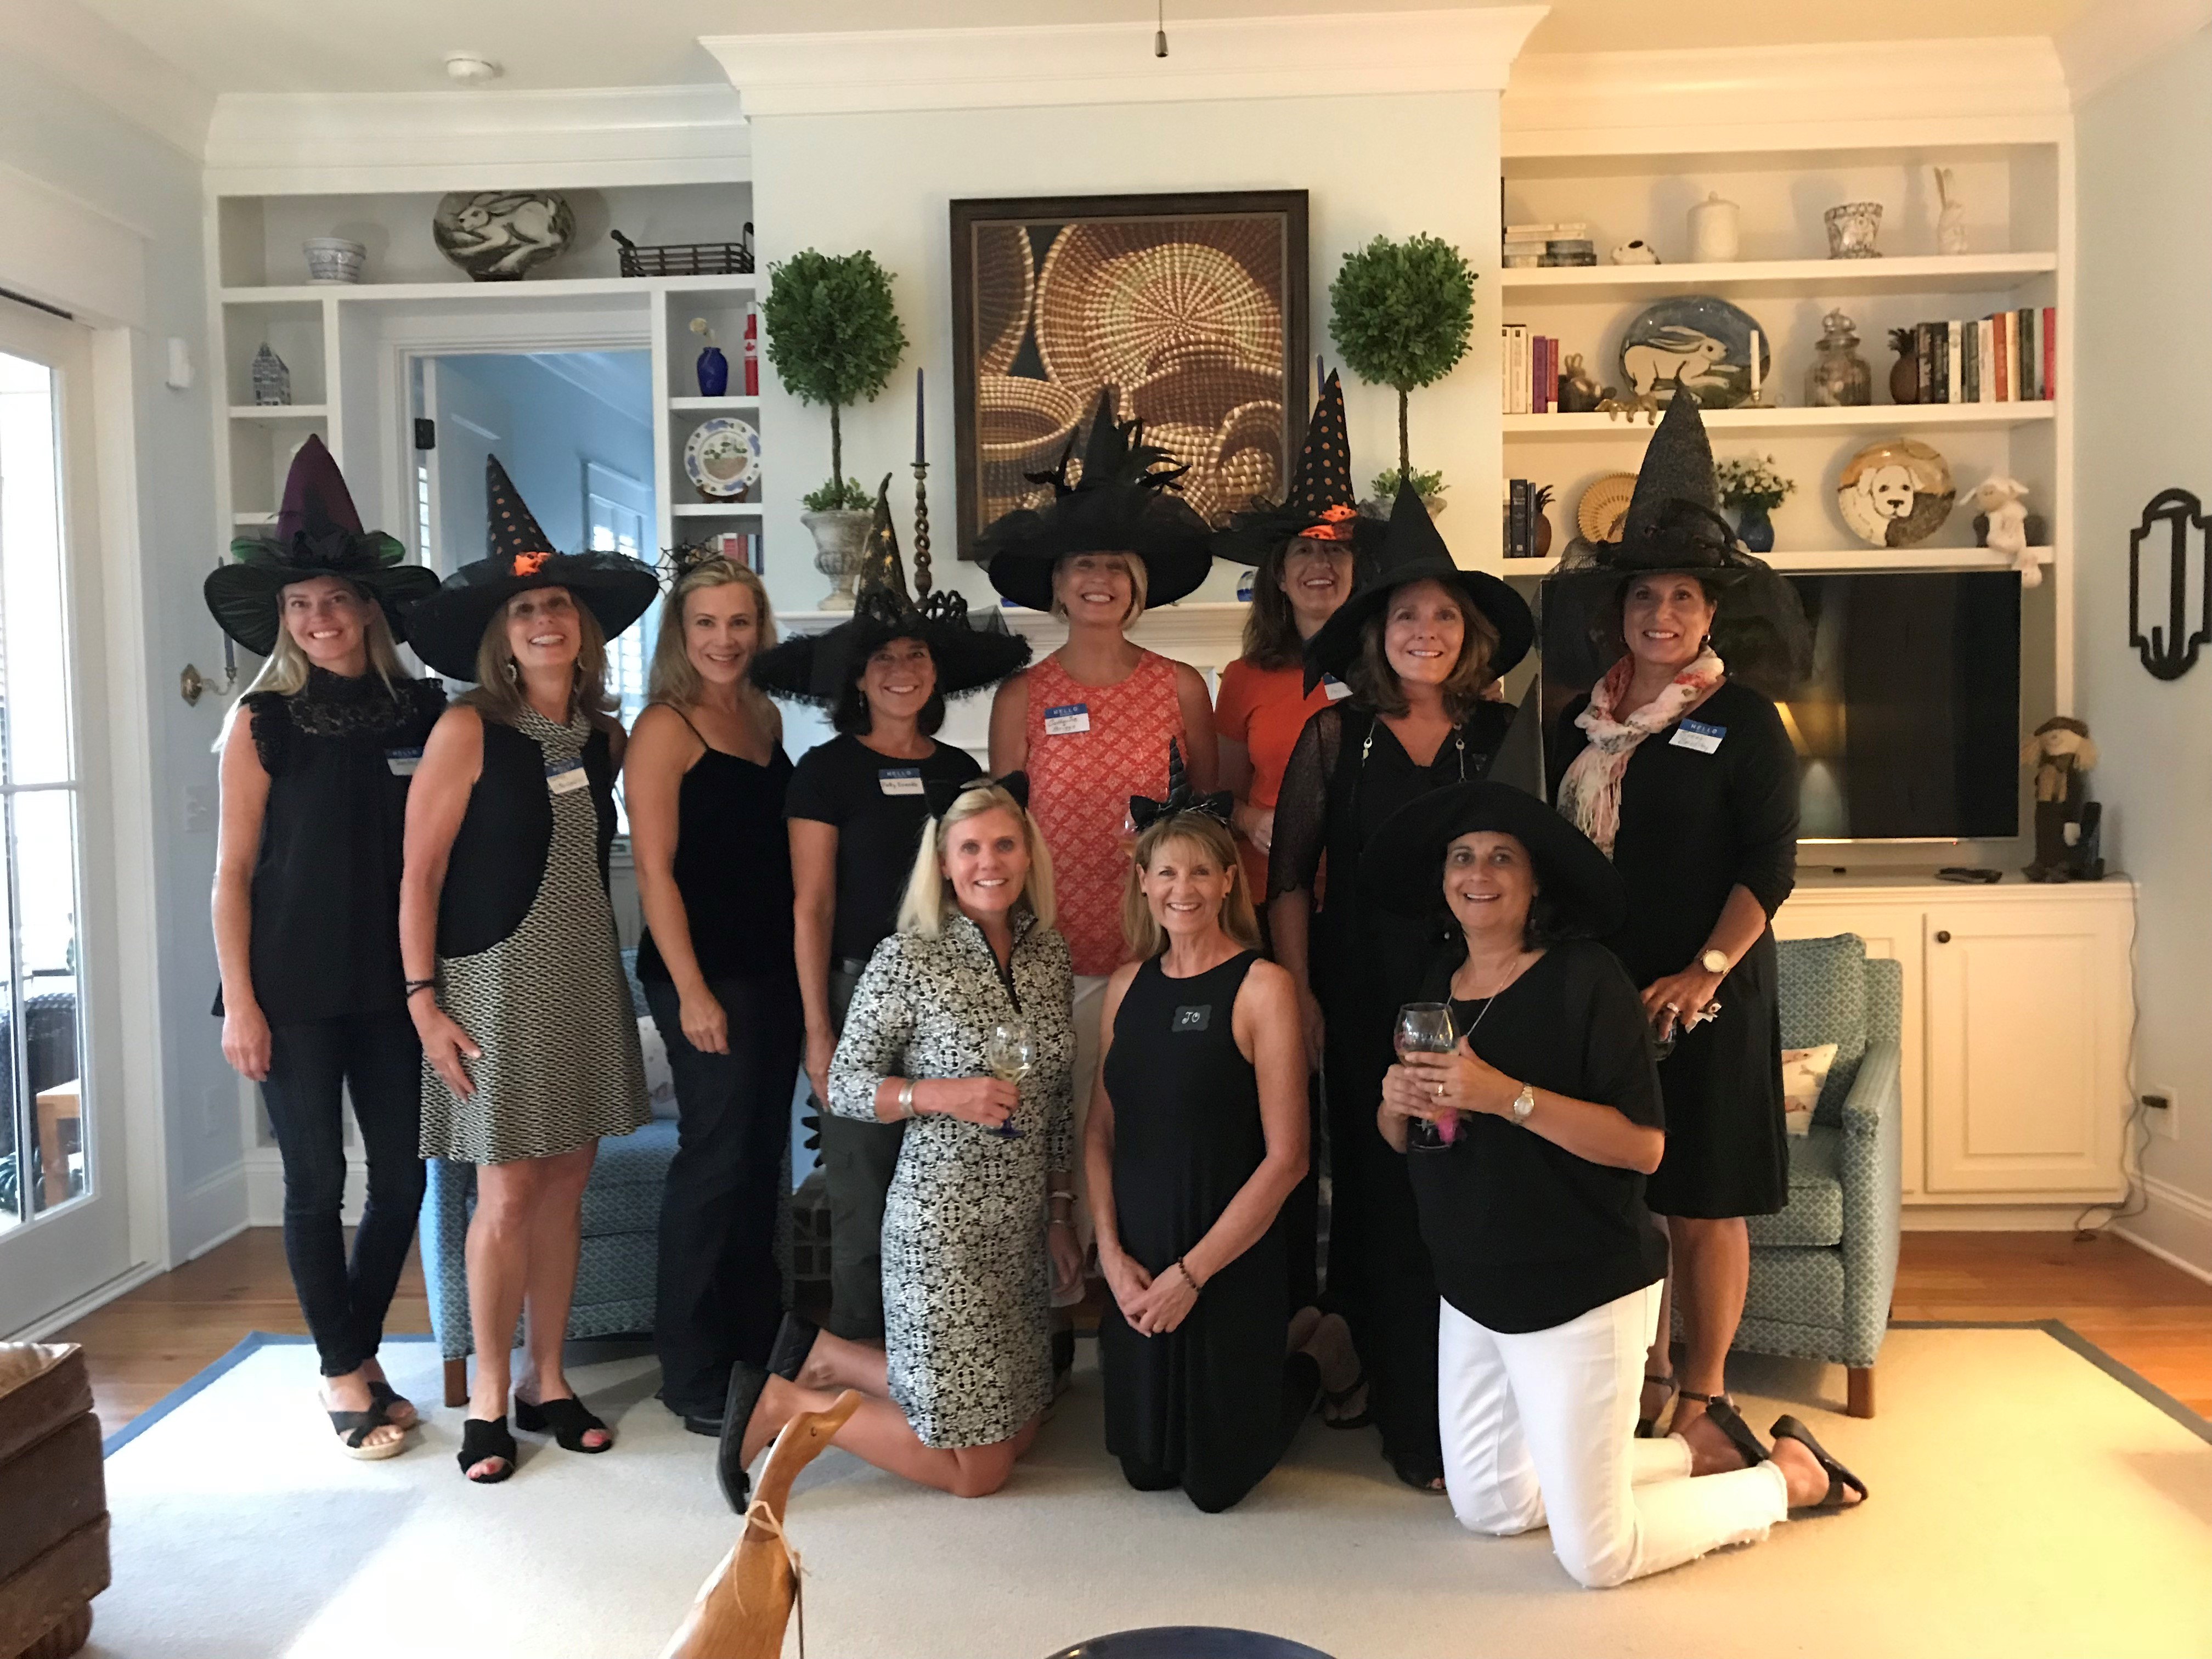 "The monthly Women Who Wine group had ""a great time and a nice turnout"" at their last event, according to Daniel Island resident Amy Justis, who hosted the group at her home on Oct. 9. Pictured above are members of the hostess team. Back row (left to right): Jennifer Ferm, Meryl Cromarty, Drue McGarty, Patty Evanko, Catherine Briggs, Amy Justis, Kimberly Roberts, and Susan Brinkley. Front row: Kameran Casey, Jo Rogers, and Beth Ranson. Not pictured: Ellen Underhill and Tami Perkinson."